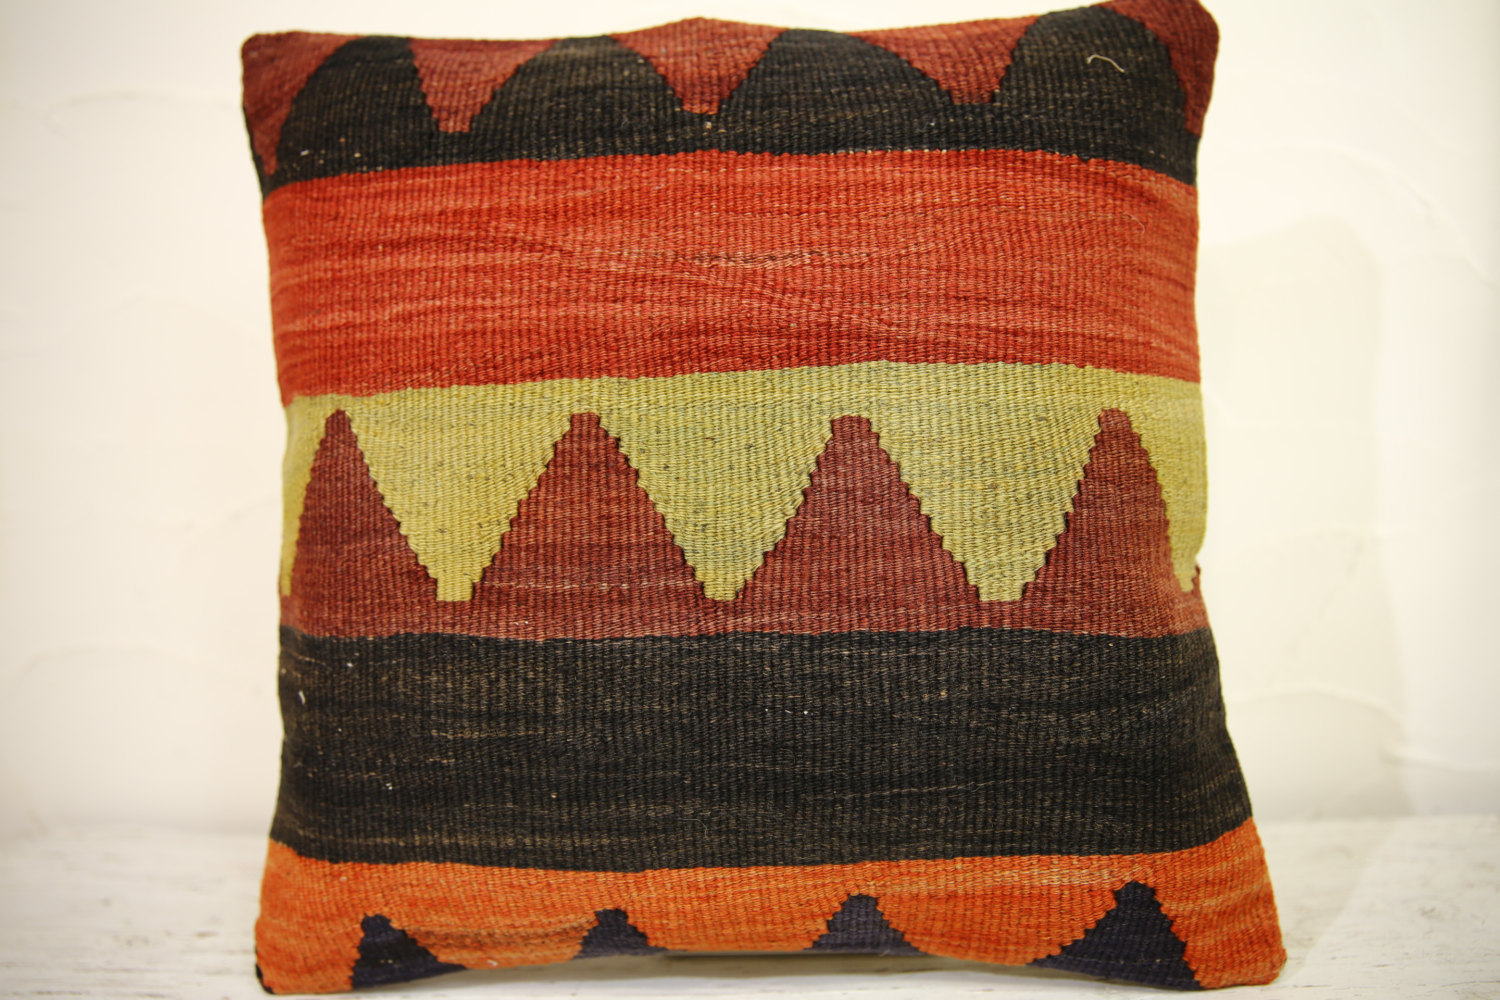 Kilim Pillows | 16x16 | Turkish pillows | 1070 | Ethnic Pillow , Kelim cushion